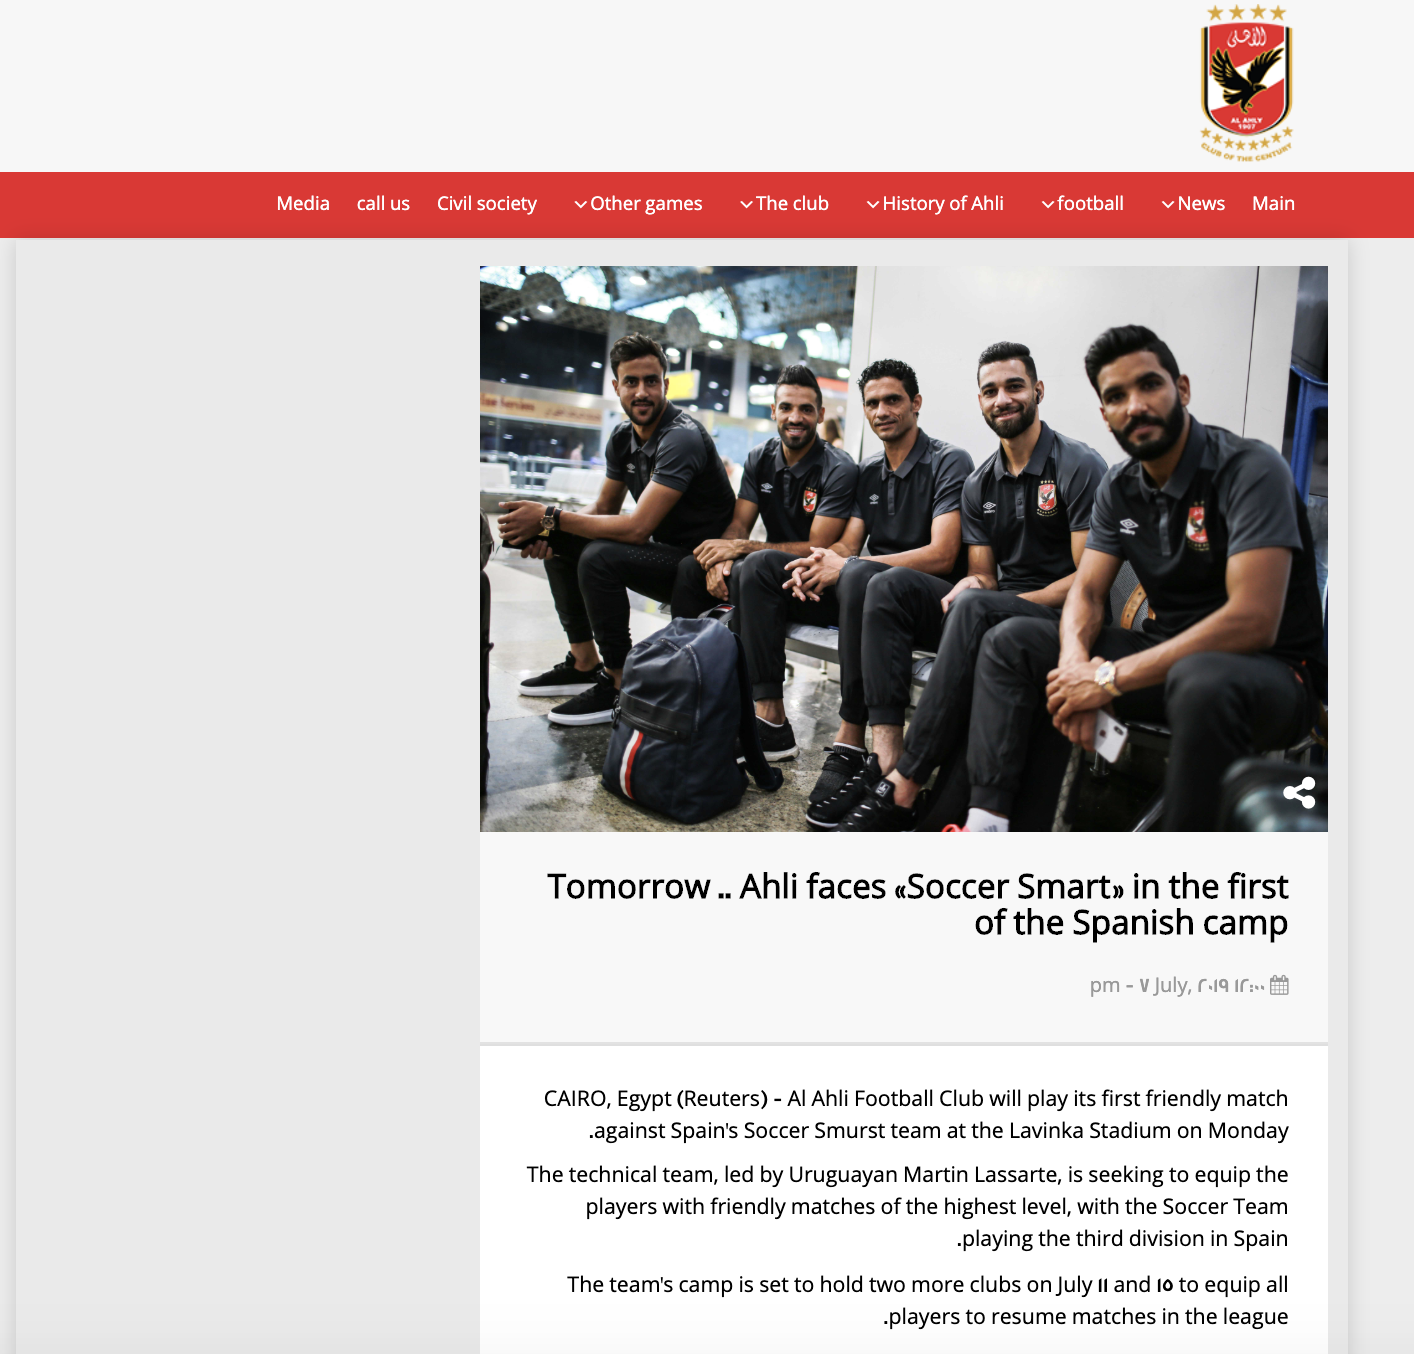 The translated version of the news article on the Al Ahly website.